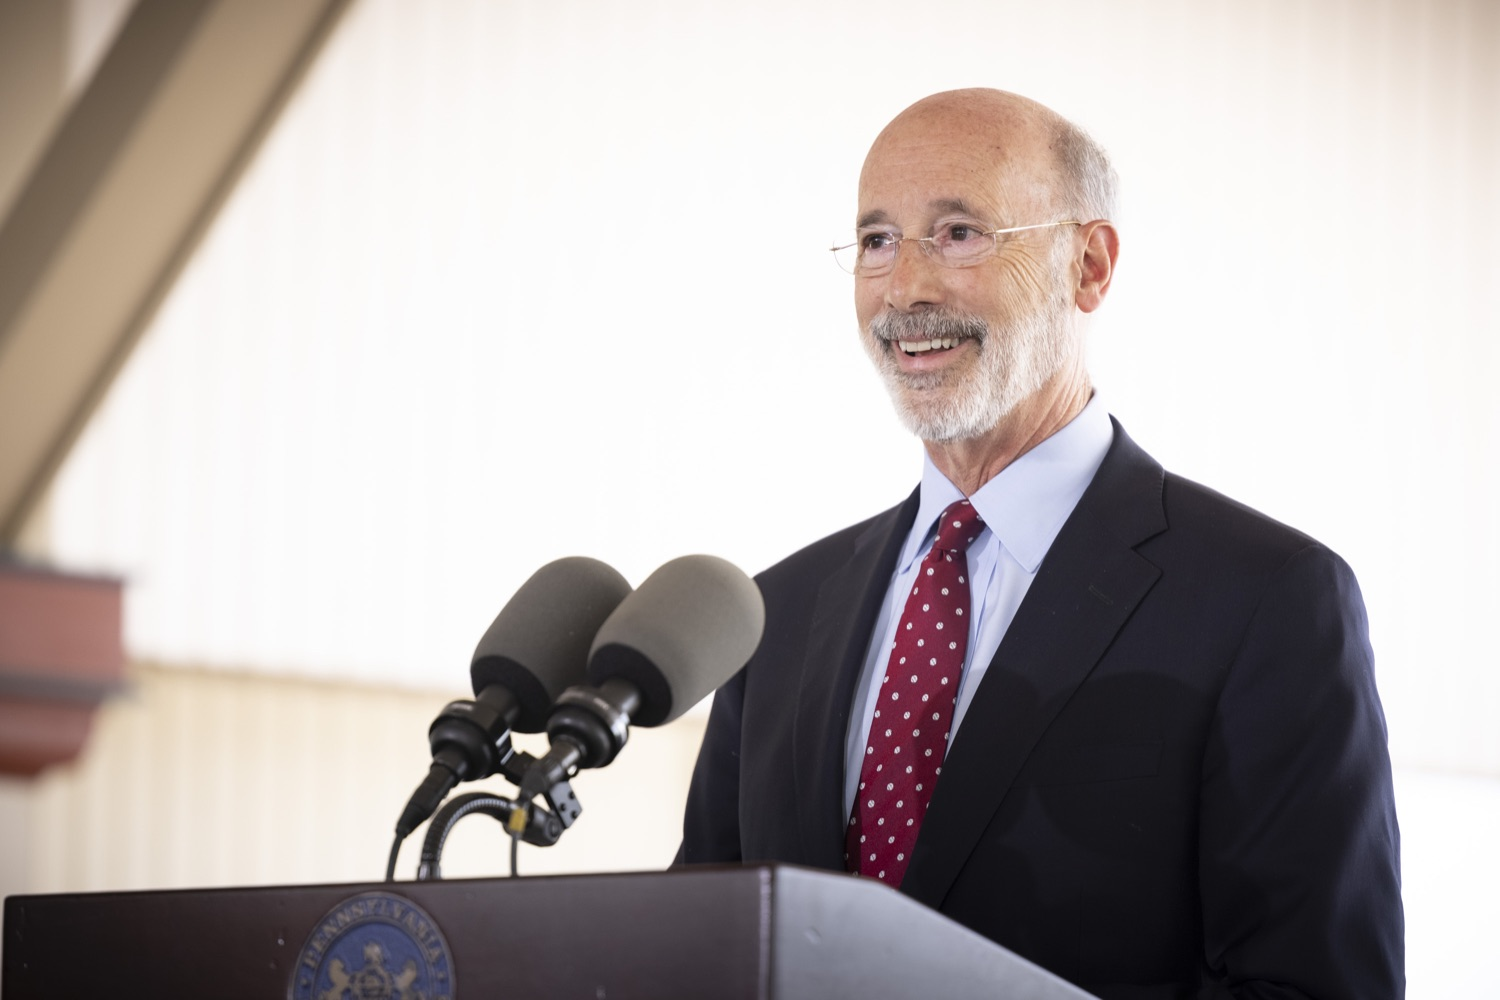 """<a href=""""https://filesource.wostreaming.net/commonwealthofpa/photo/18932_gov_chirp_dz_001.jpg"""" target=""""_blank"""">⇣Download Photo<br></a>Pennsylvania Governor Tom Wolf speaking with the press.  Governor Tom Wolf today joined the Pennsylvania Department of Community and Economic Development, Bucks County Commissioners, Bristol Borough Mayor Joseph Saxton, local lawmakers, Bucks County Economic Development Corporation, Visit Bucks County, the Bucks County Redevelopment Authority, and the owners of Itri Wood Fired to highlight the $7 million in grant funding provided to Bucks County restaurants through the COVID-19 Hospitality Industry Recovery Program(CHIRP).  JULY 16, 2021 - BRISTOL, PA"""